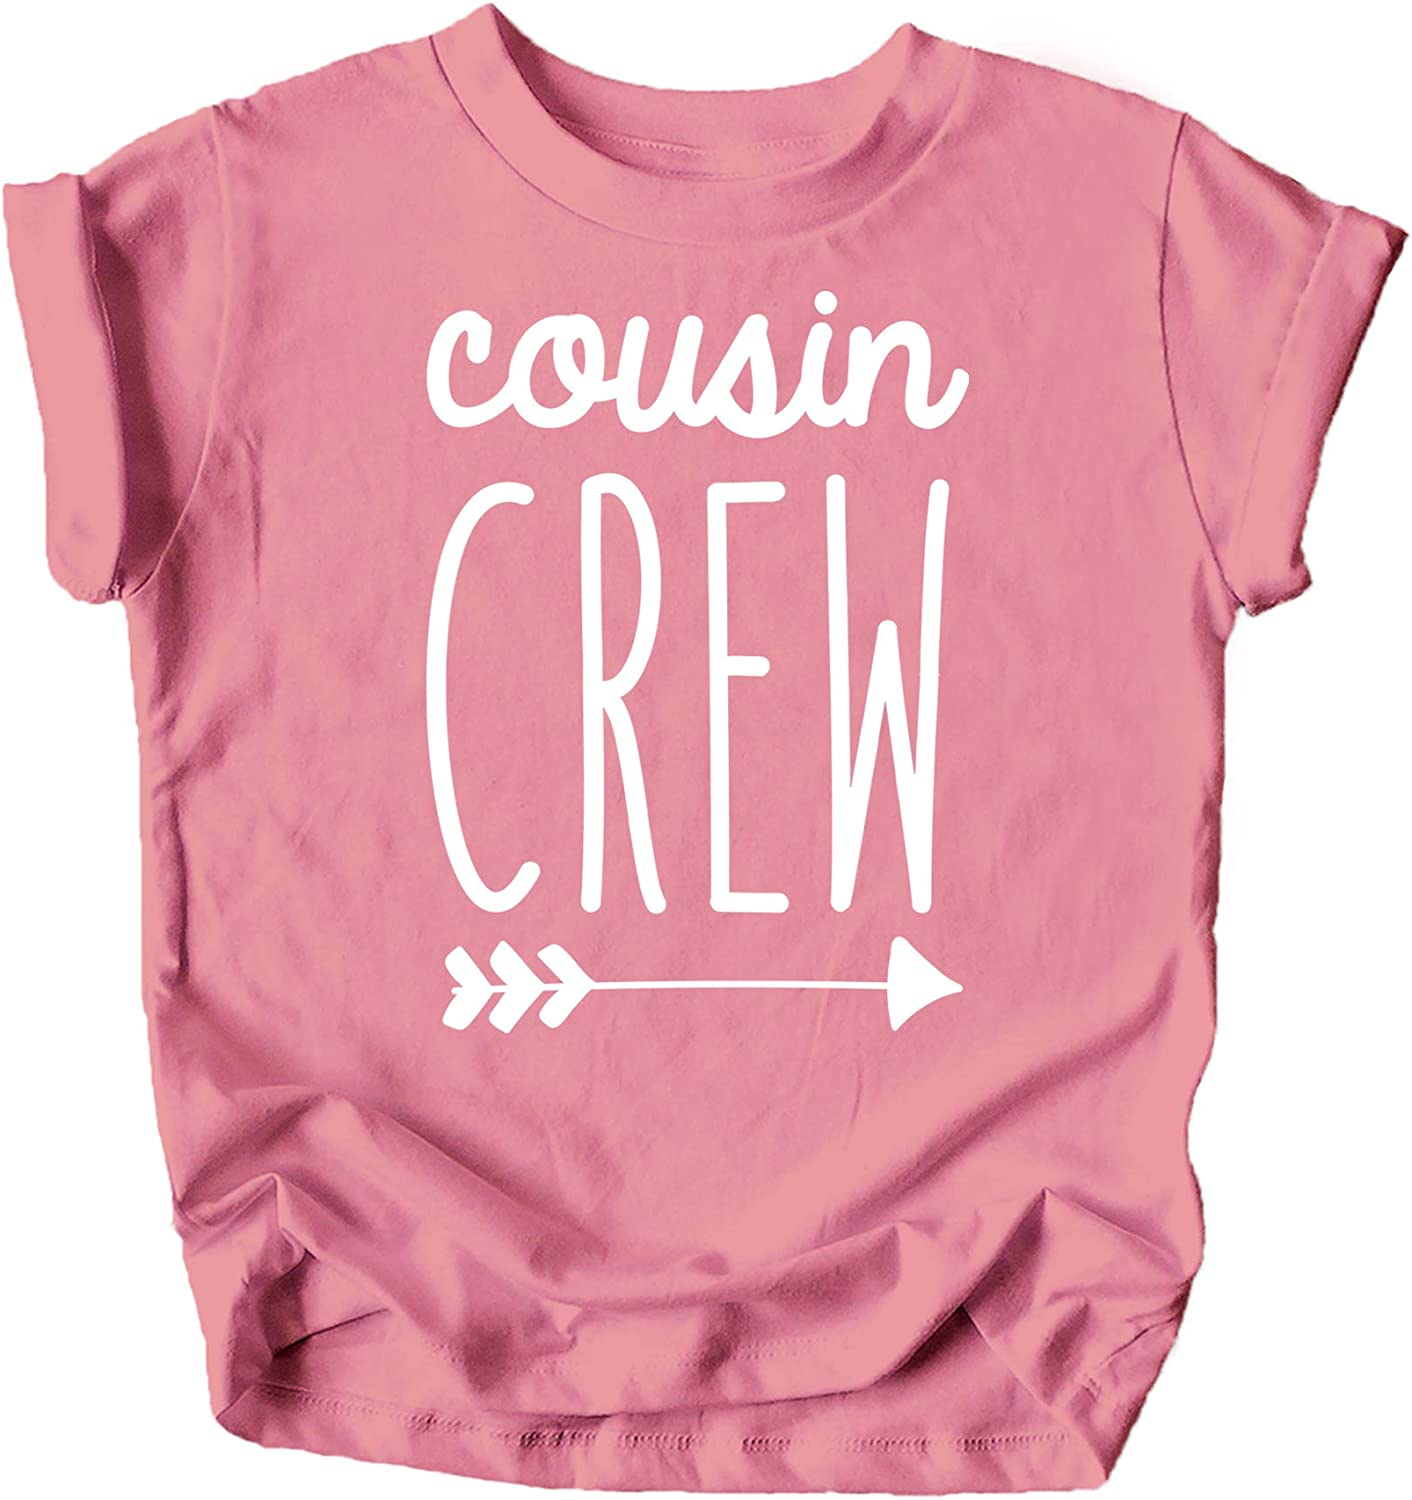 Cousin Crew Arrow T-Shirts and Baby Bo Toddler Free Shipping New Bodysuits for Max 49% OFF